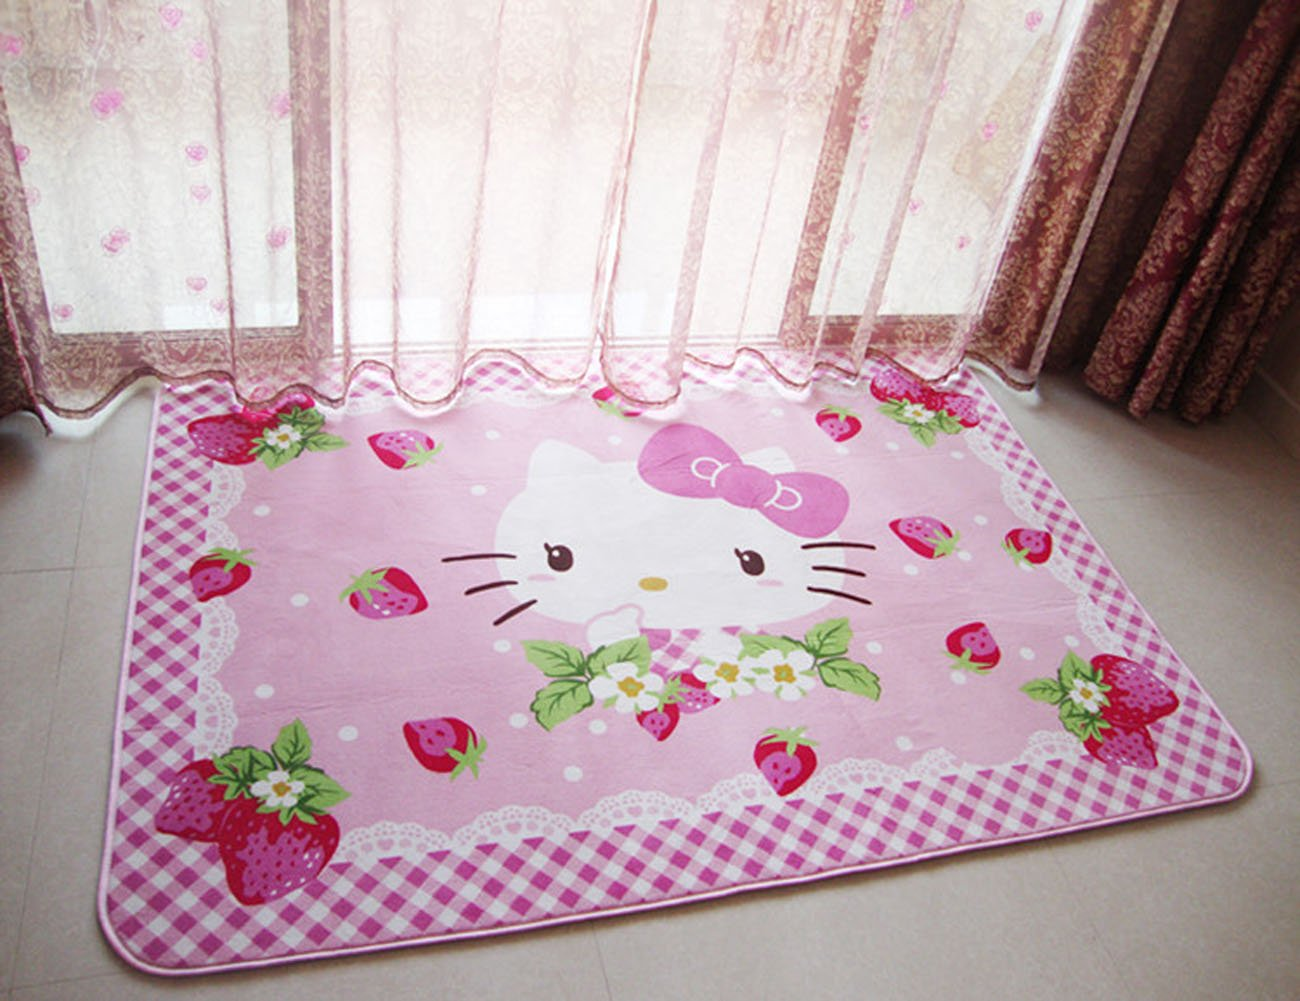 Kids Bedroom Playing/Crawling Mat,Hello Kitty Area Rug